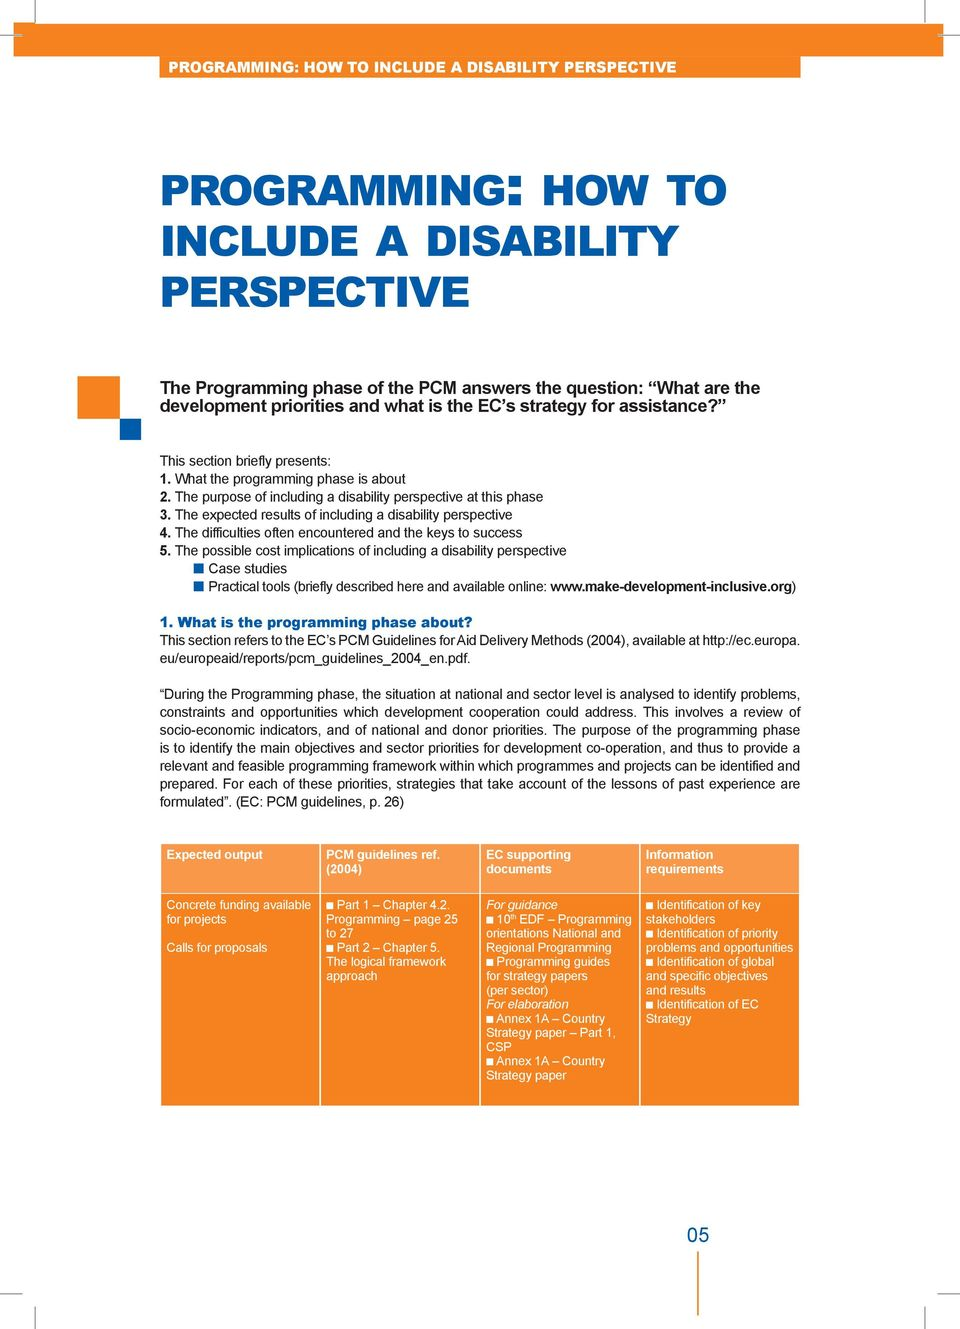 The expected results of including a disability perspective 4. The difficulties often encountered and the keys to success 5.